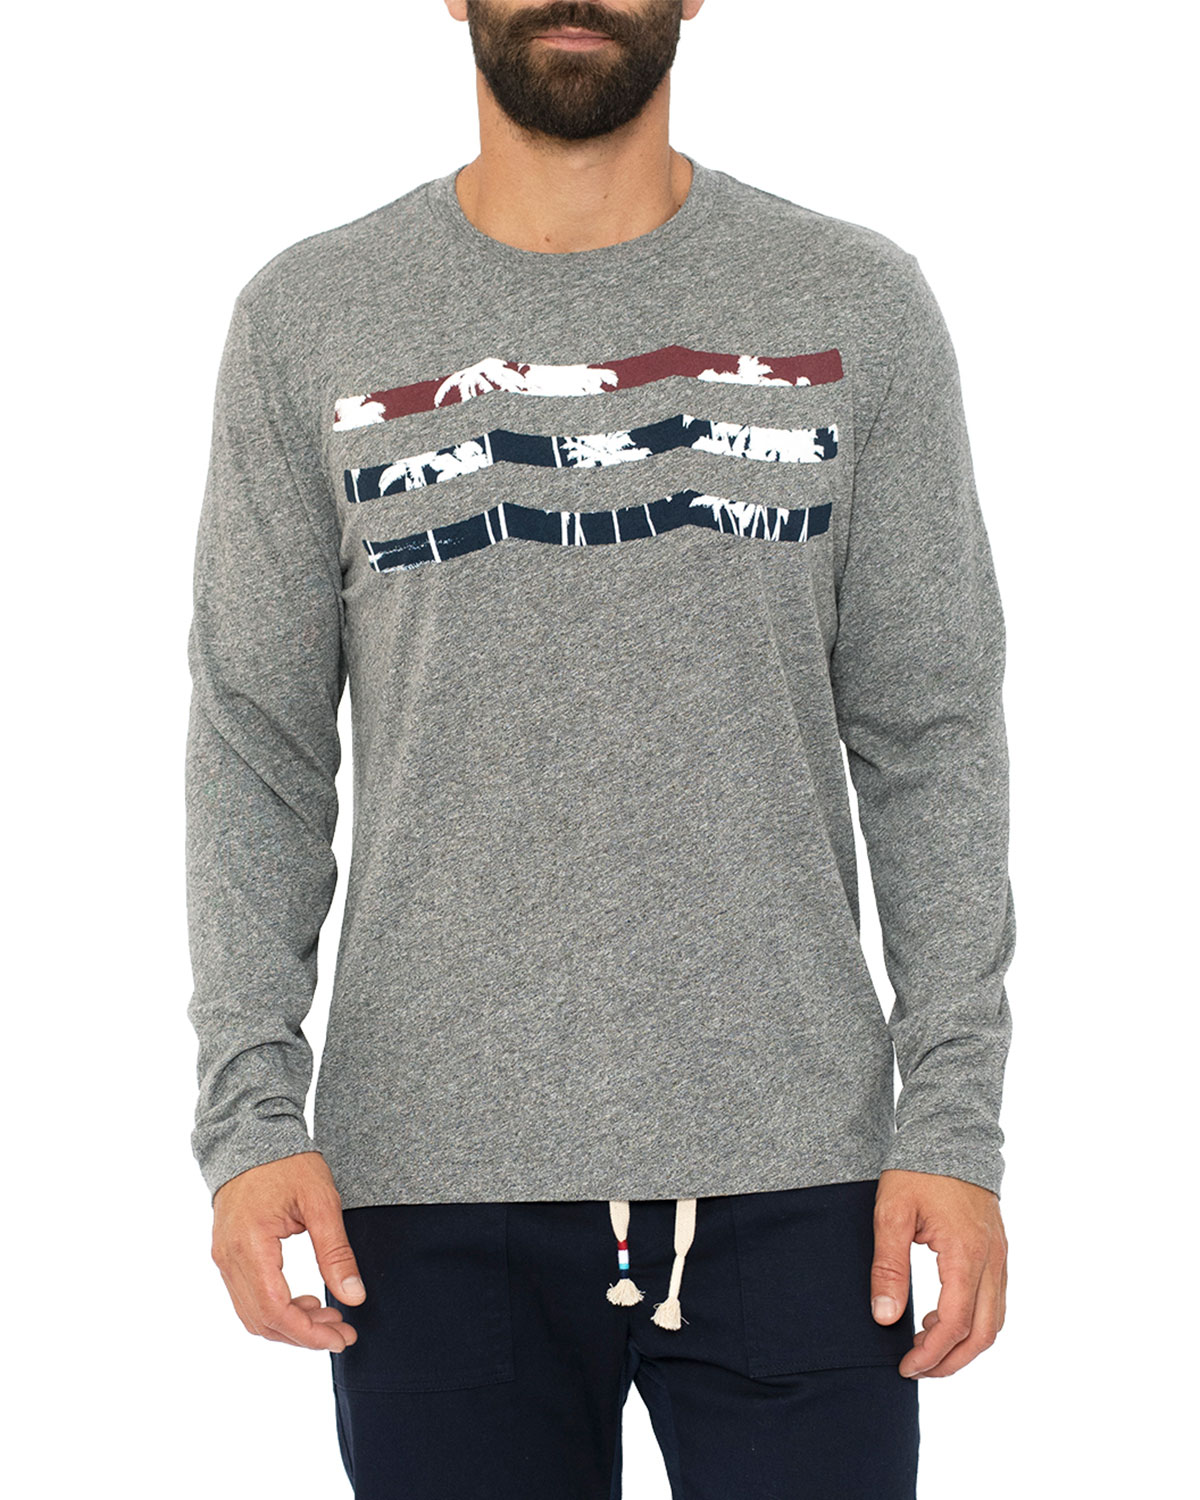 Sol Angeles T-shirts MEN'S PATRIOT PALM WAVES LONG-SLEEVE HEATHERED T-SHIRT